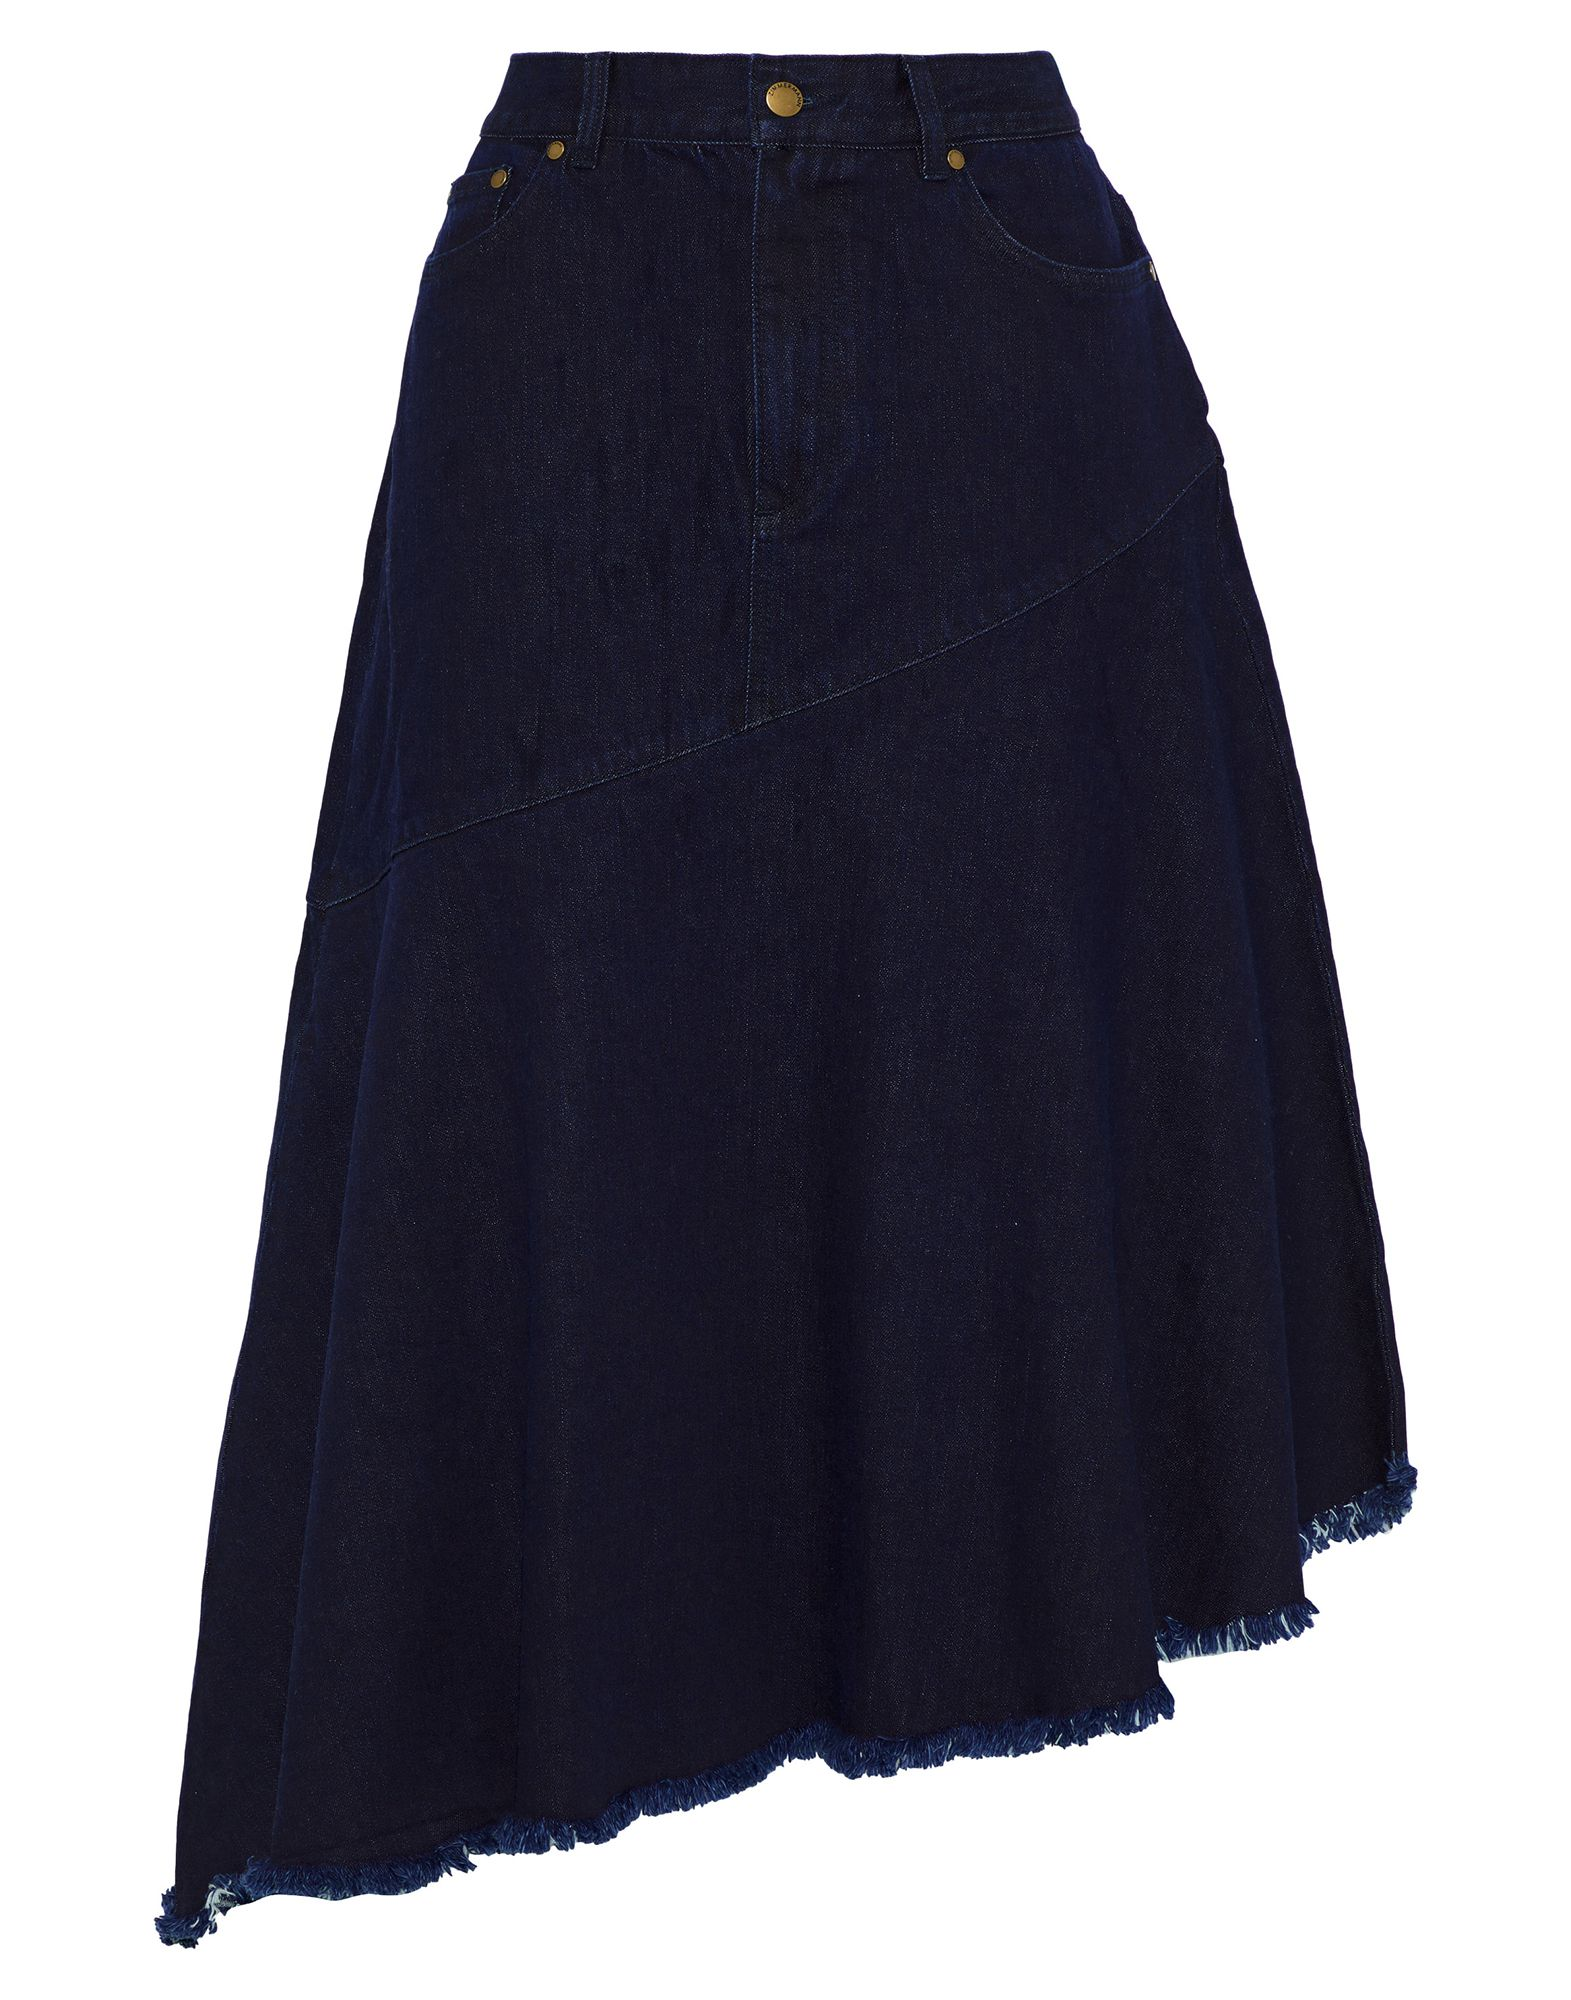 ZIMMERMANN Denim skirts. denim, logo, leather applications, solid color, medium wash, front closure, button, zip, multipockets, unlined, stretch, contains non-textile parts of animal origin. 98% Cotton, 2% Elastane